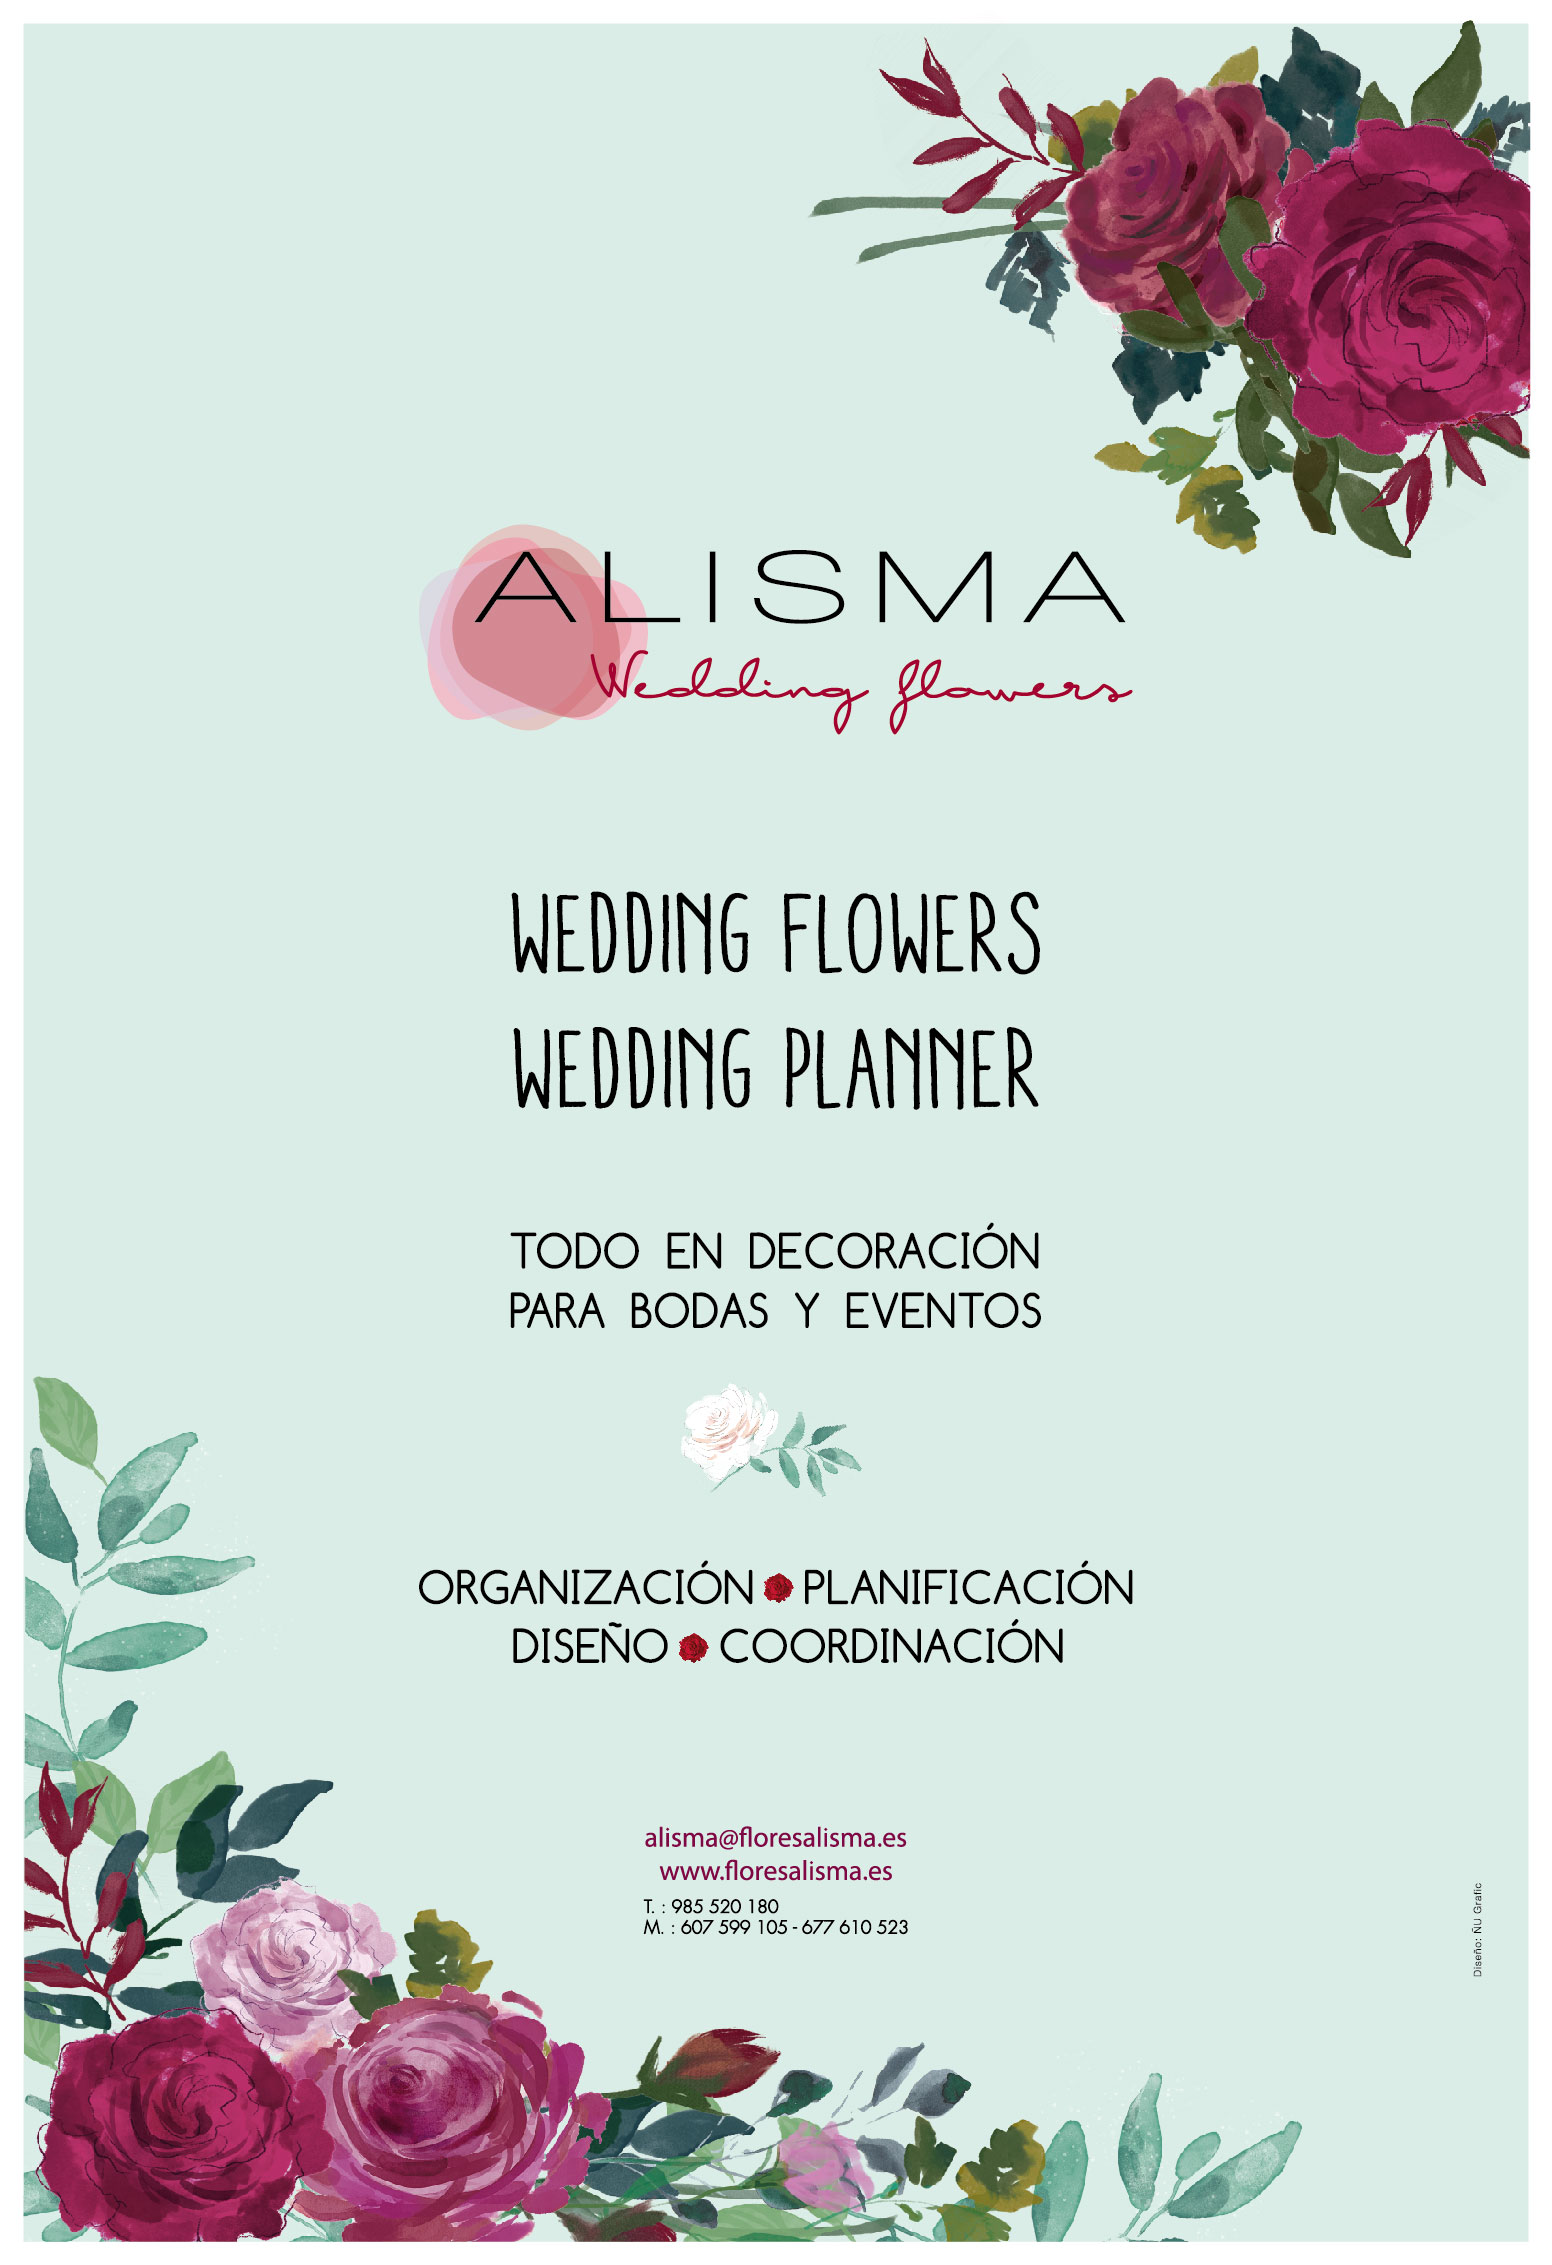 alisma wedding flowers